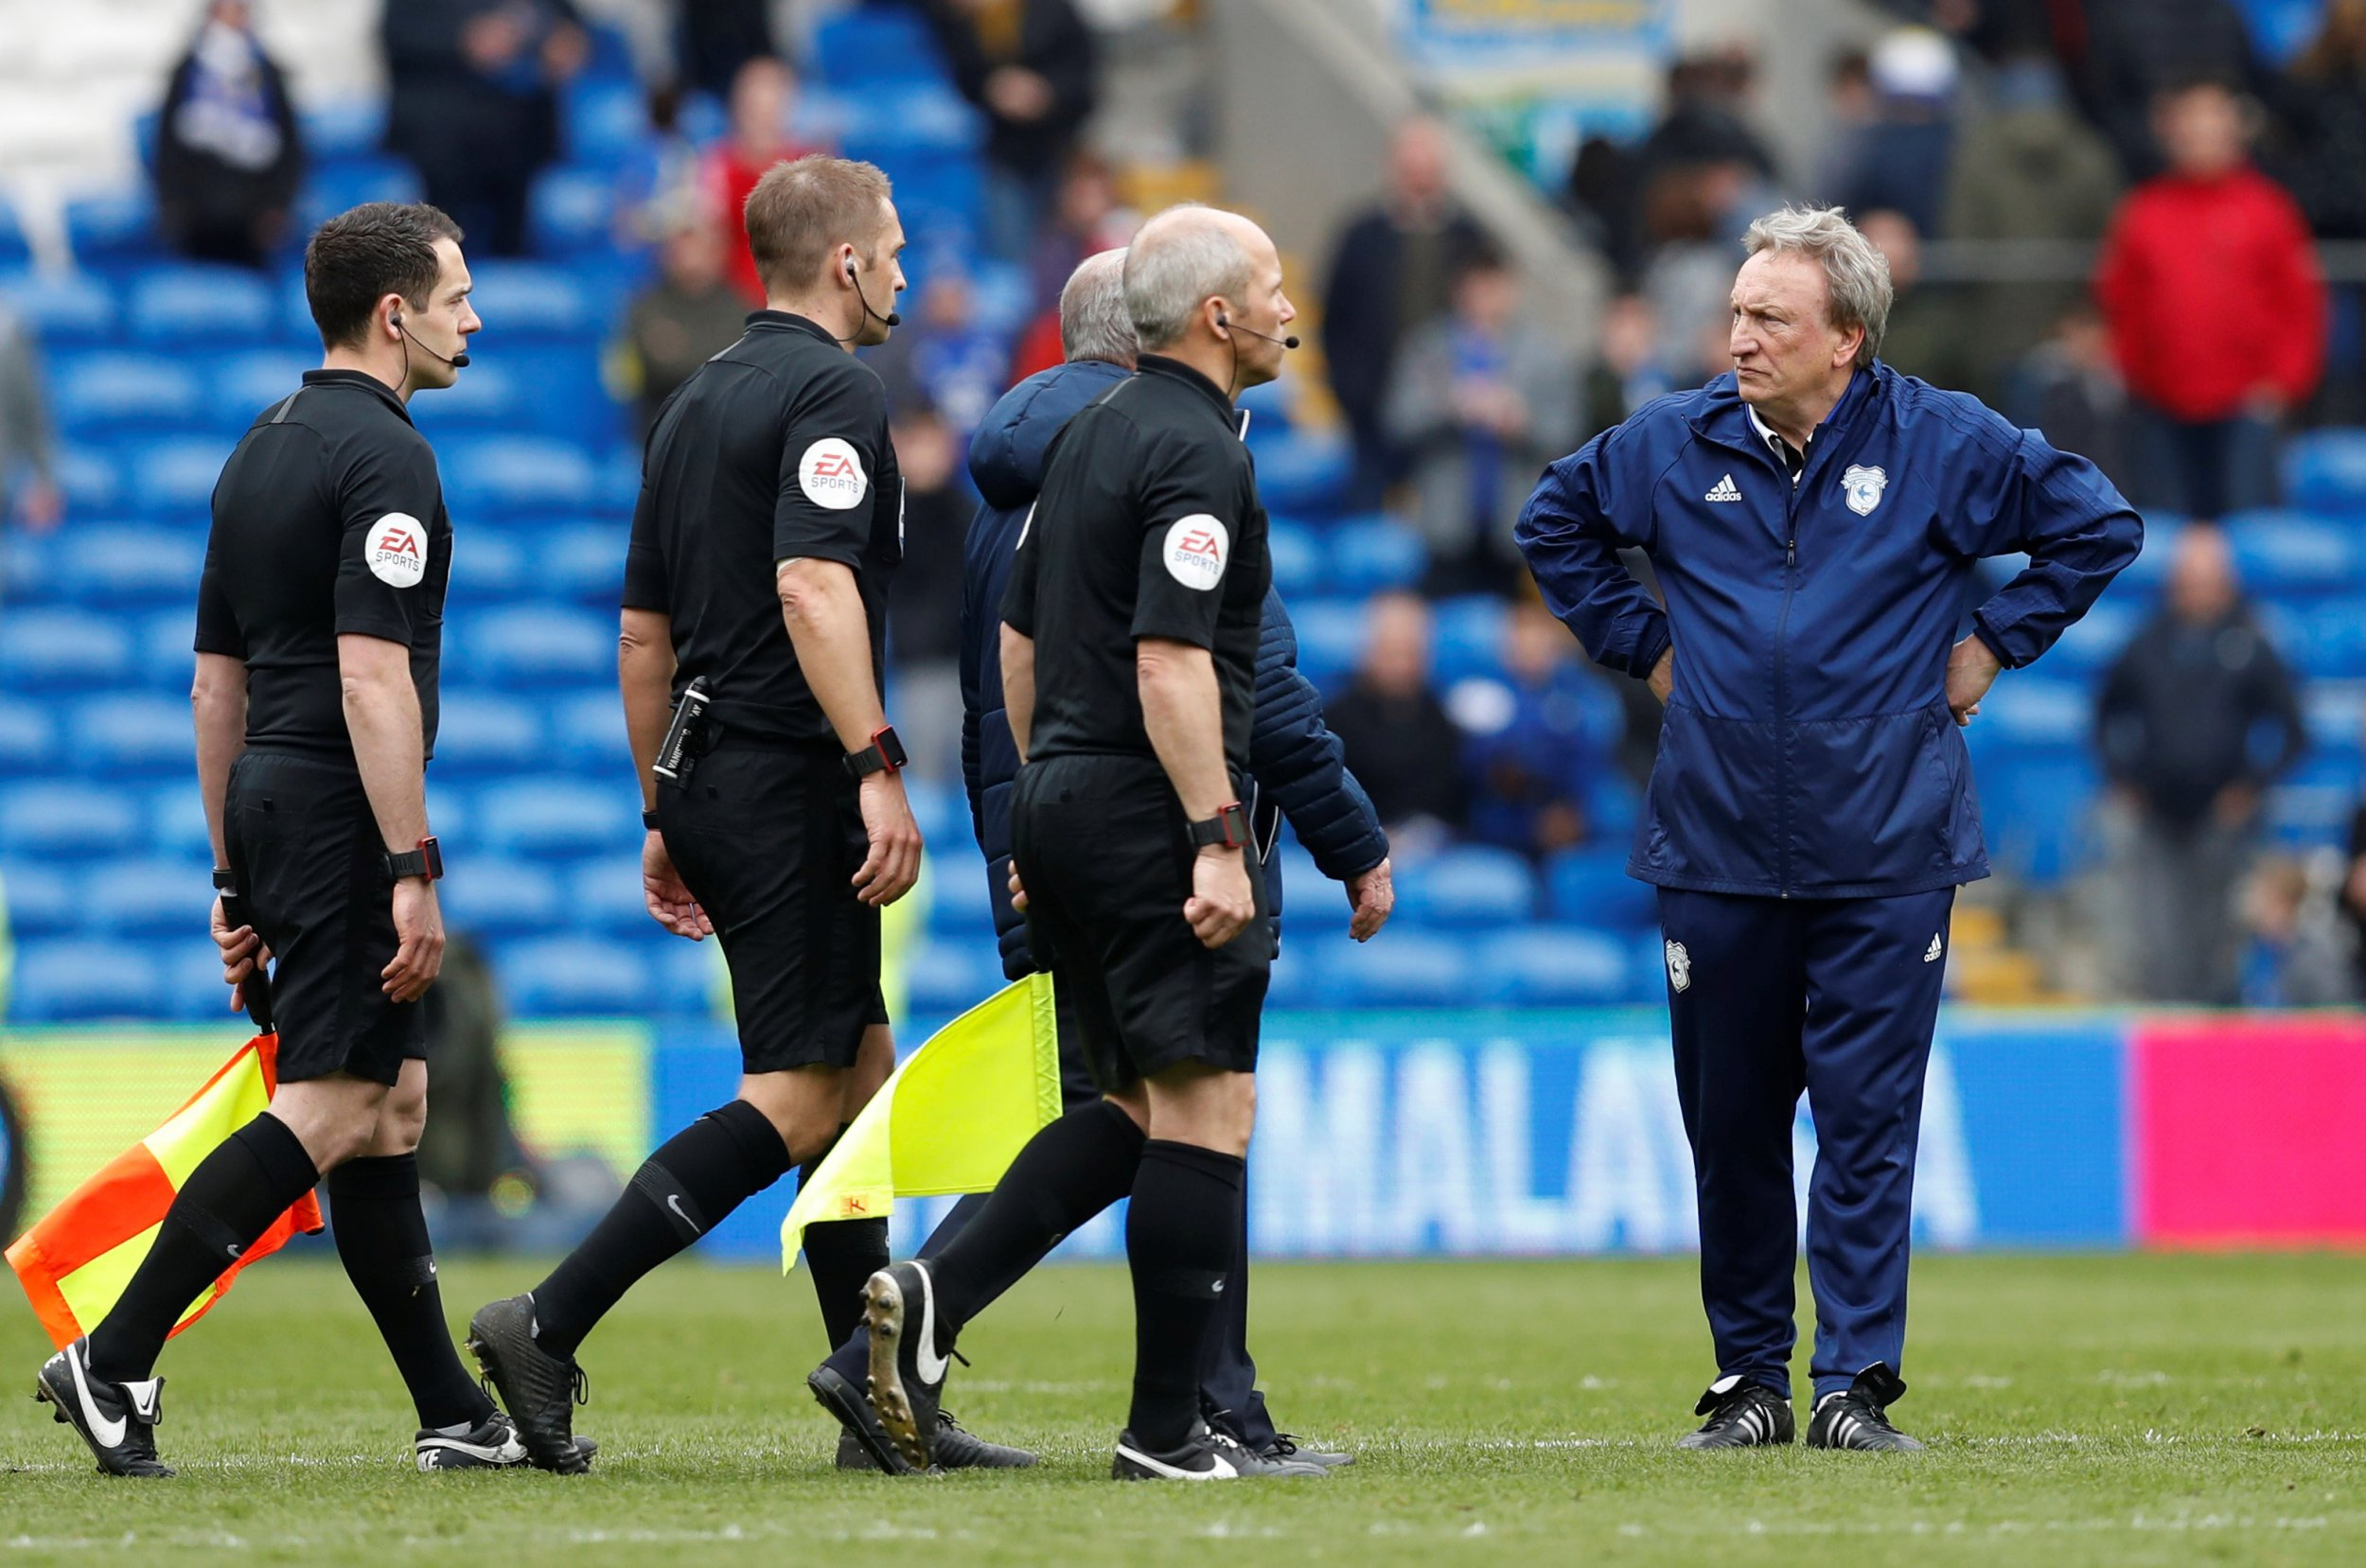 Maurizio Sarri reveals what furious Neil Warnock said after Chelsea's controversial win over Cardiff City